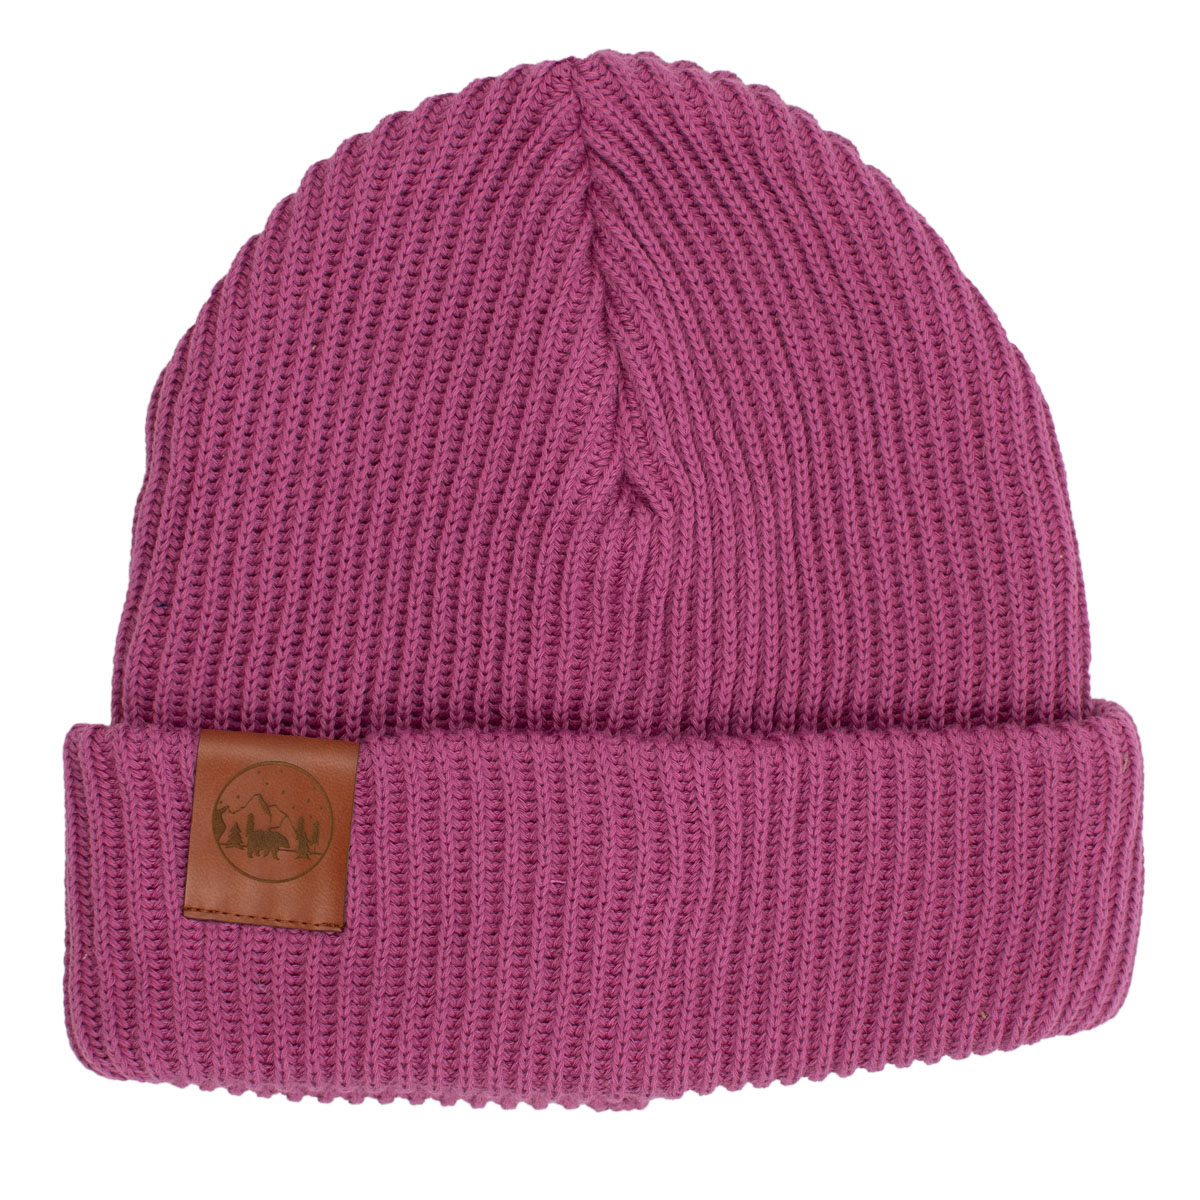 hat_warm_thick_knitted_cotton_pink451L_5906742649918 (1)